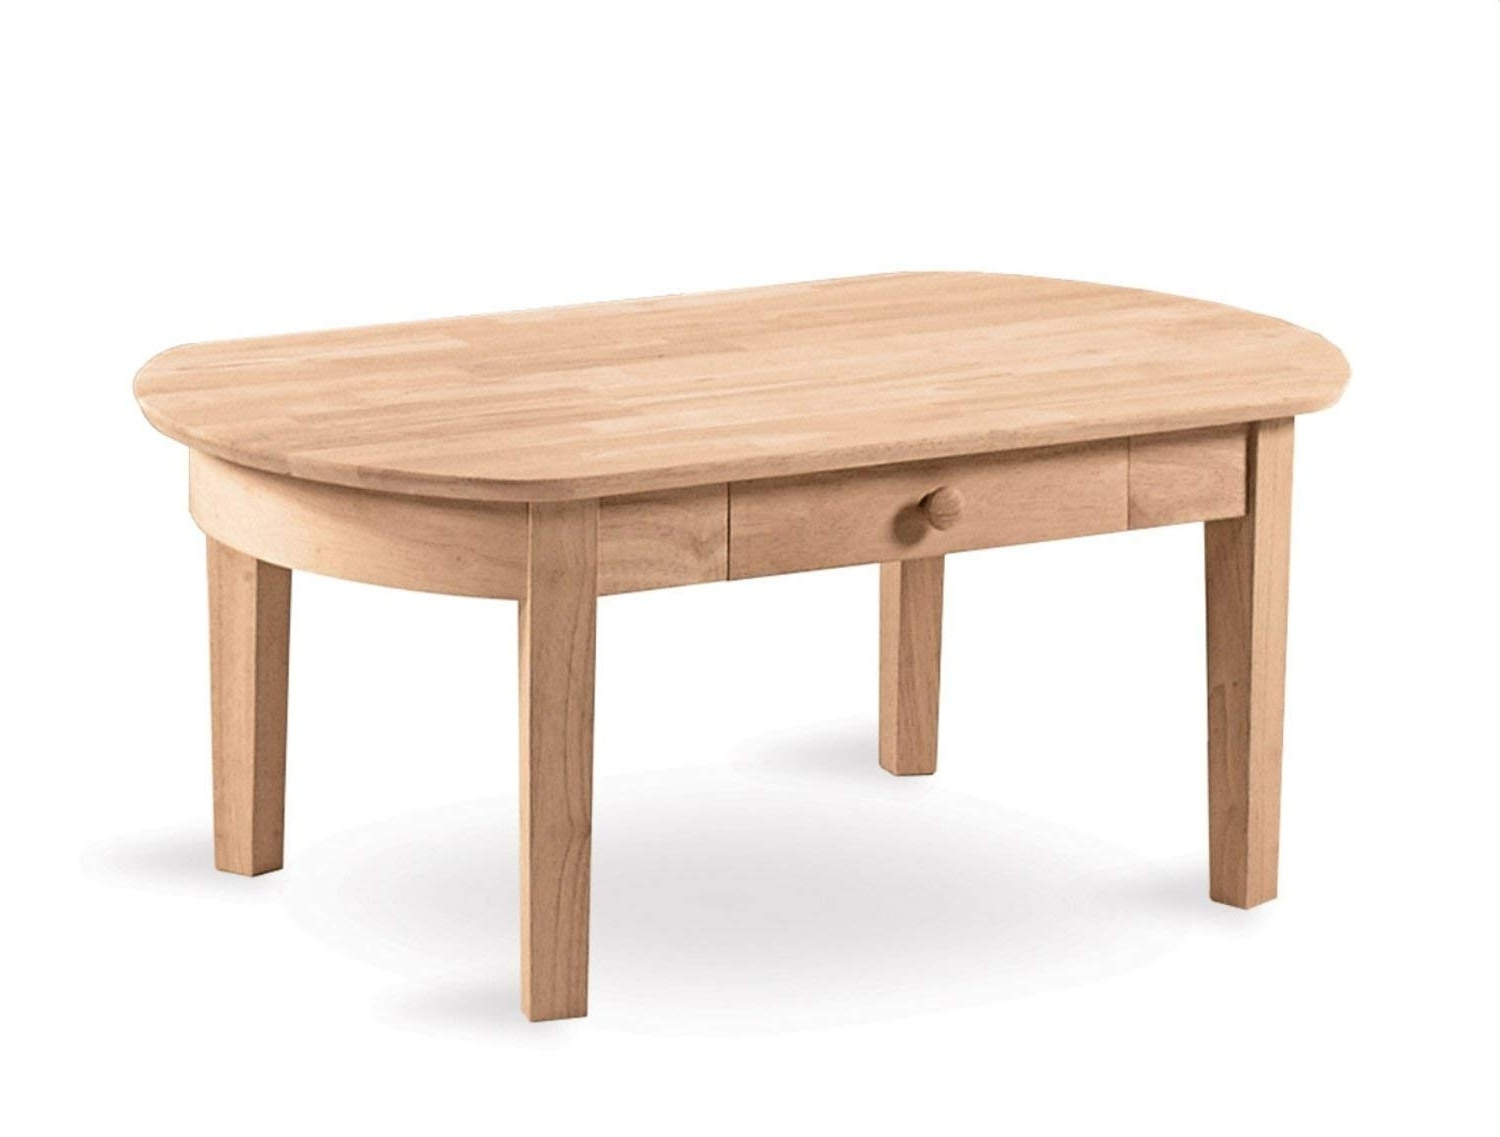 Carly Triangle Tables In Recent Amazon: International Concepts Ot 5C Phillips Oval Coffee Table (View 8 of 25)